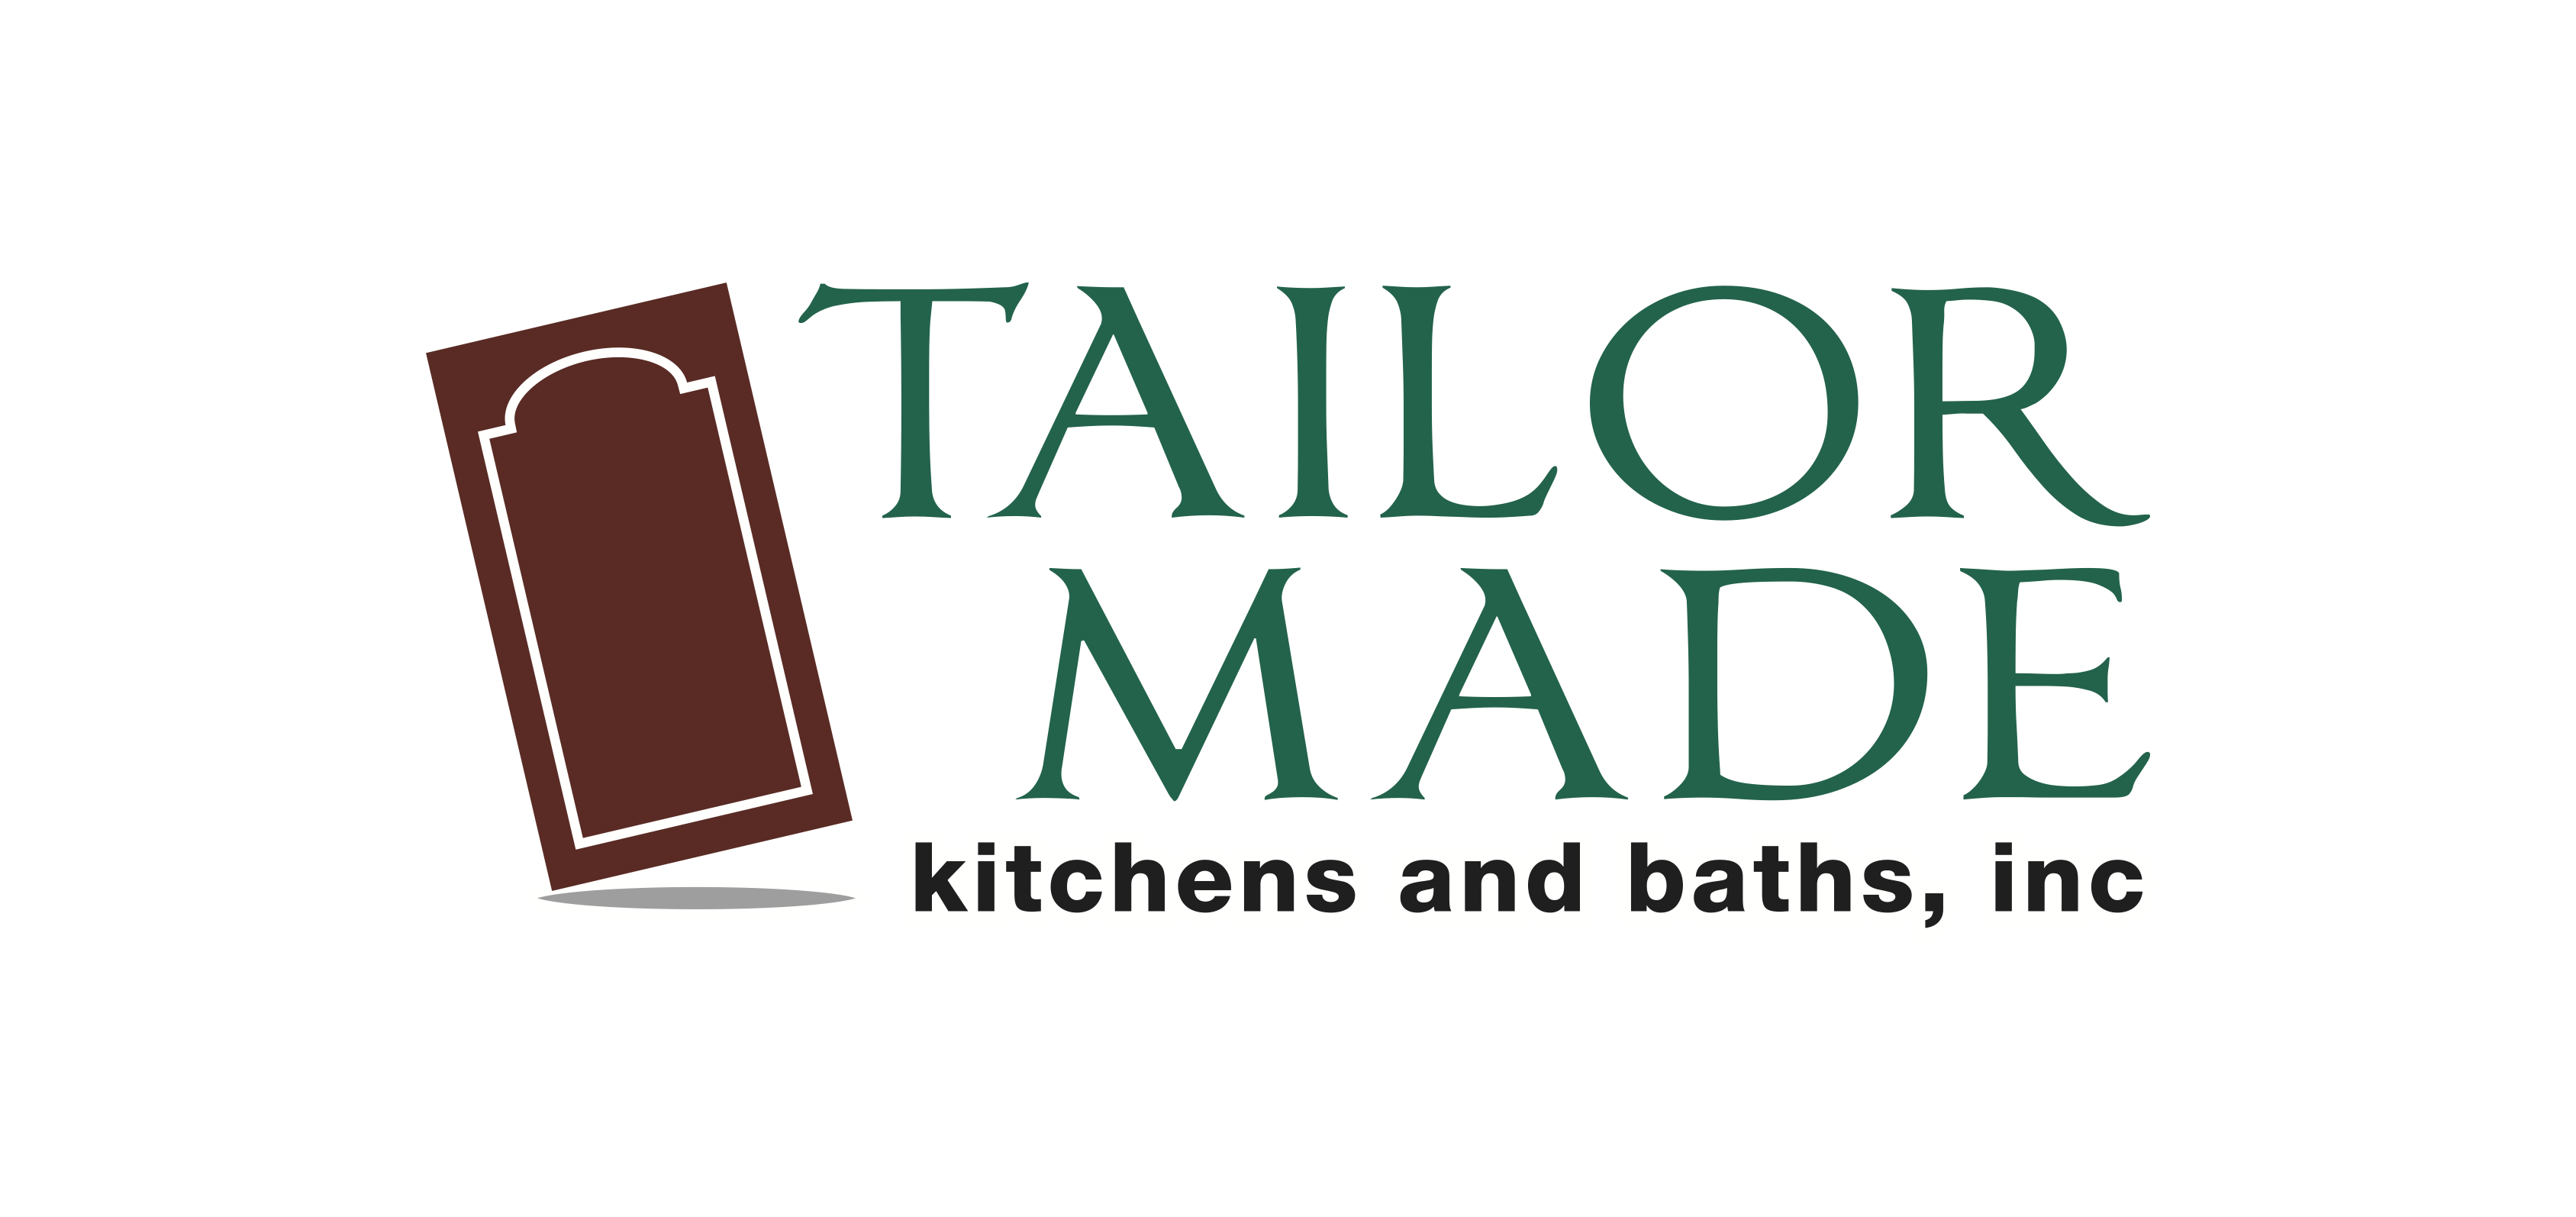 Tailor Made Kitchens and Baths